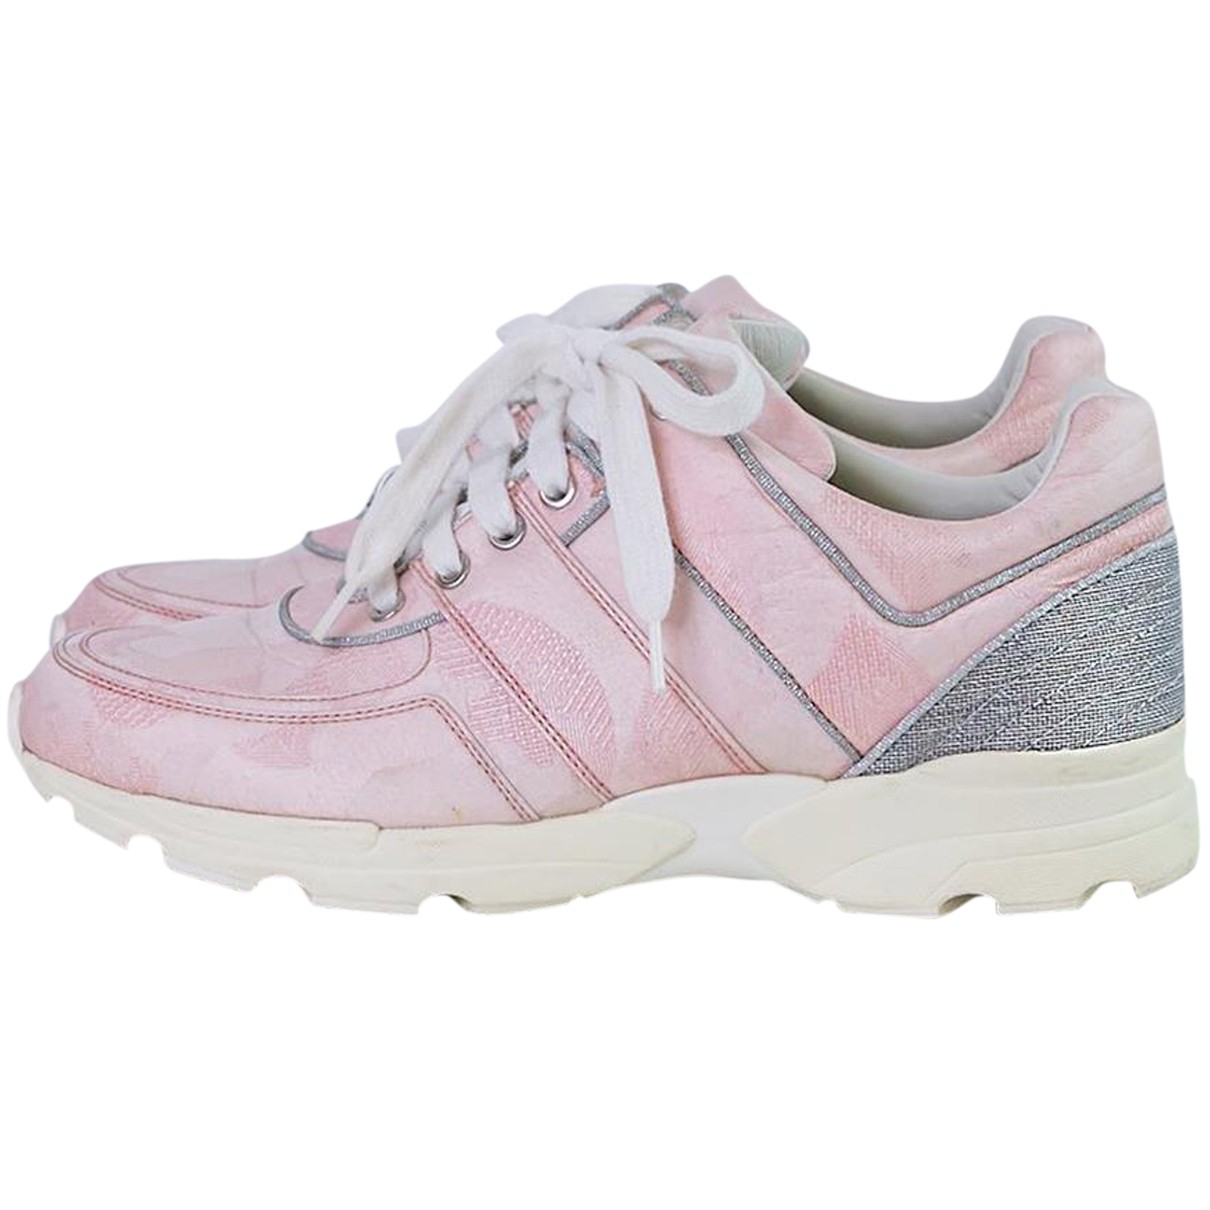 Chanel N Pink Cloth Trainers for Women 39.5 EU